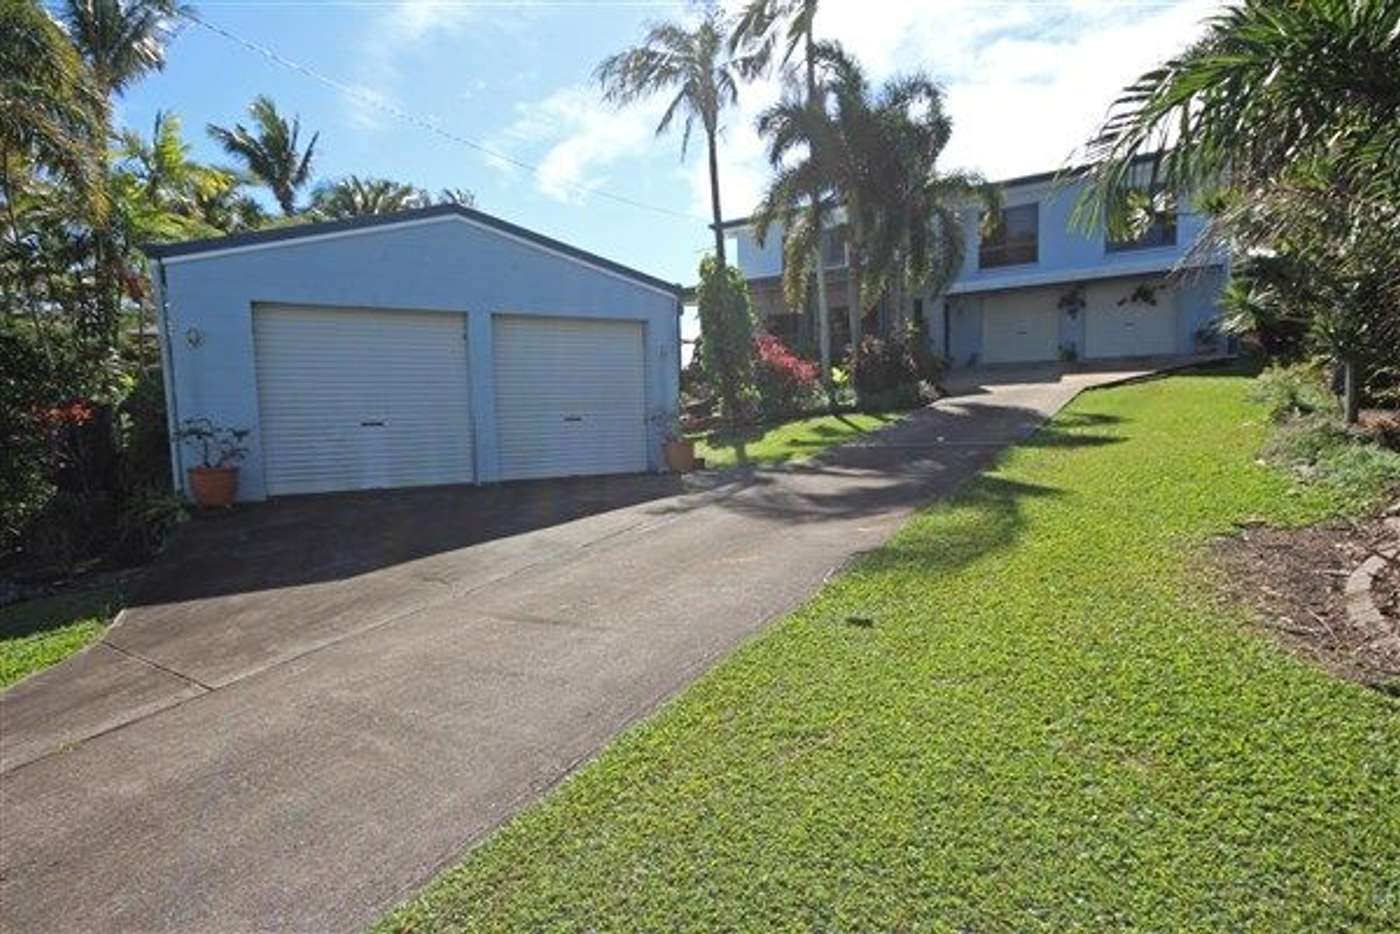 Main view of Homely house listing, 3 Inlet Court, Campwin Beach QLD 4737